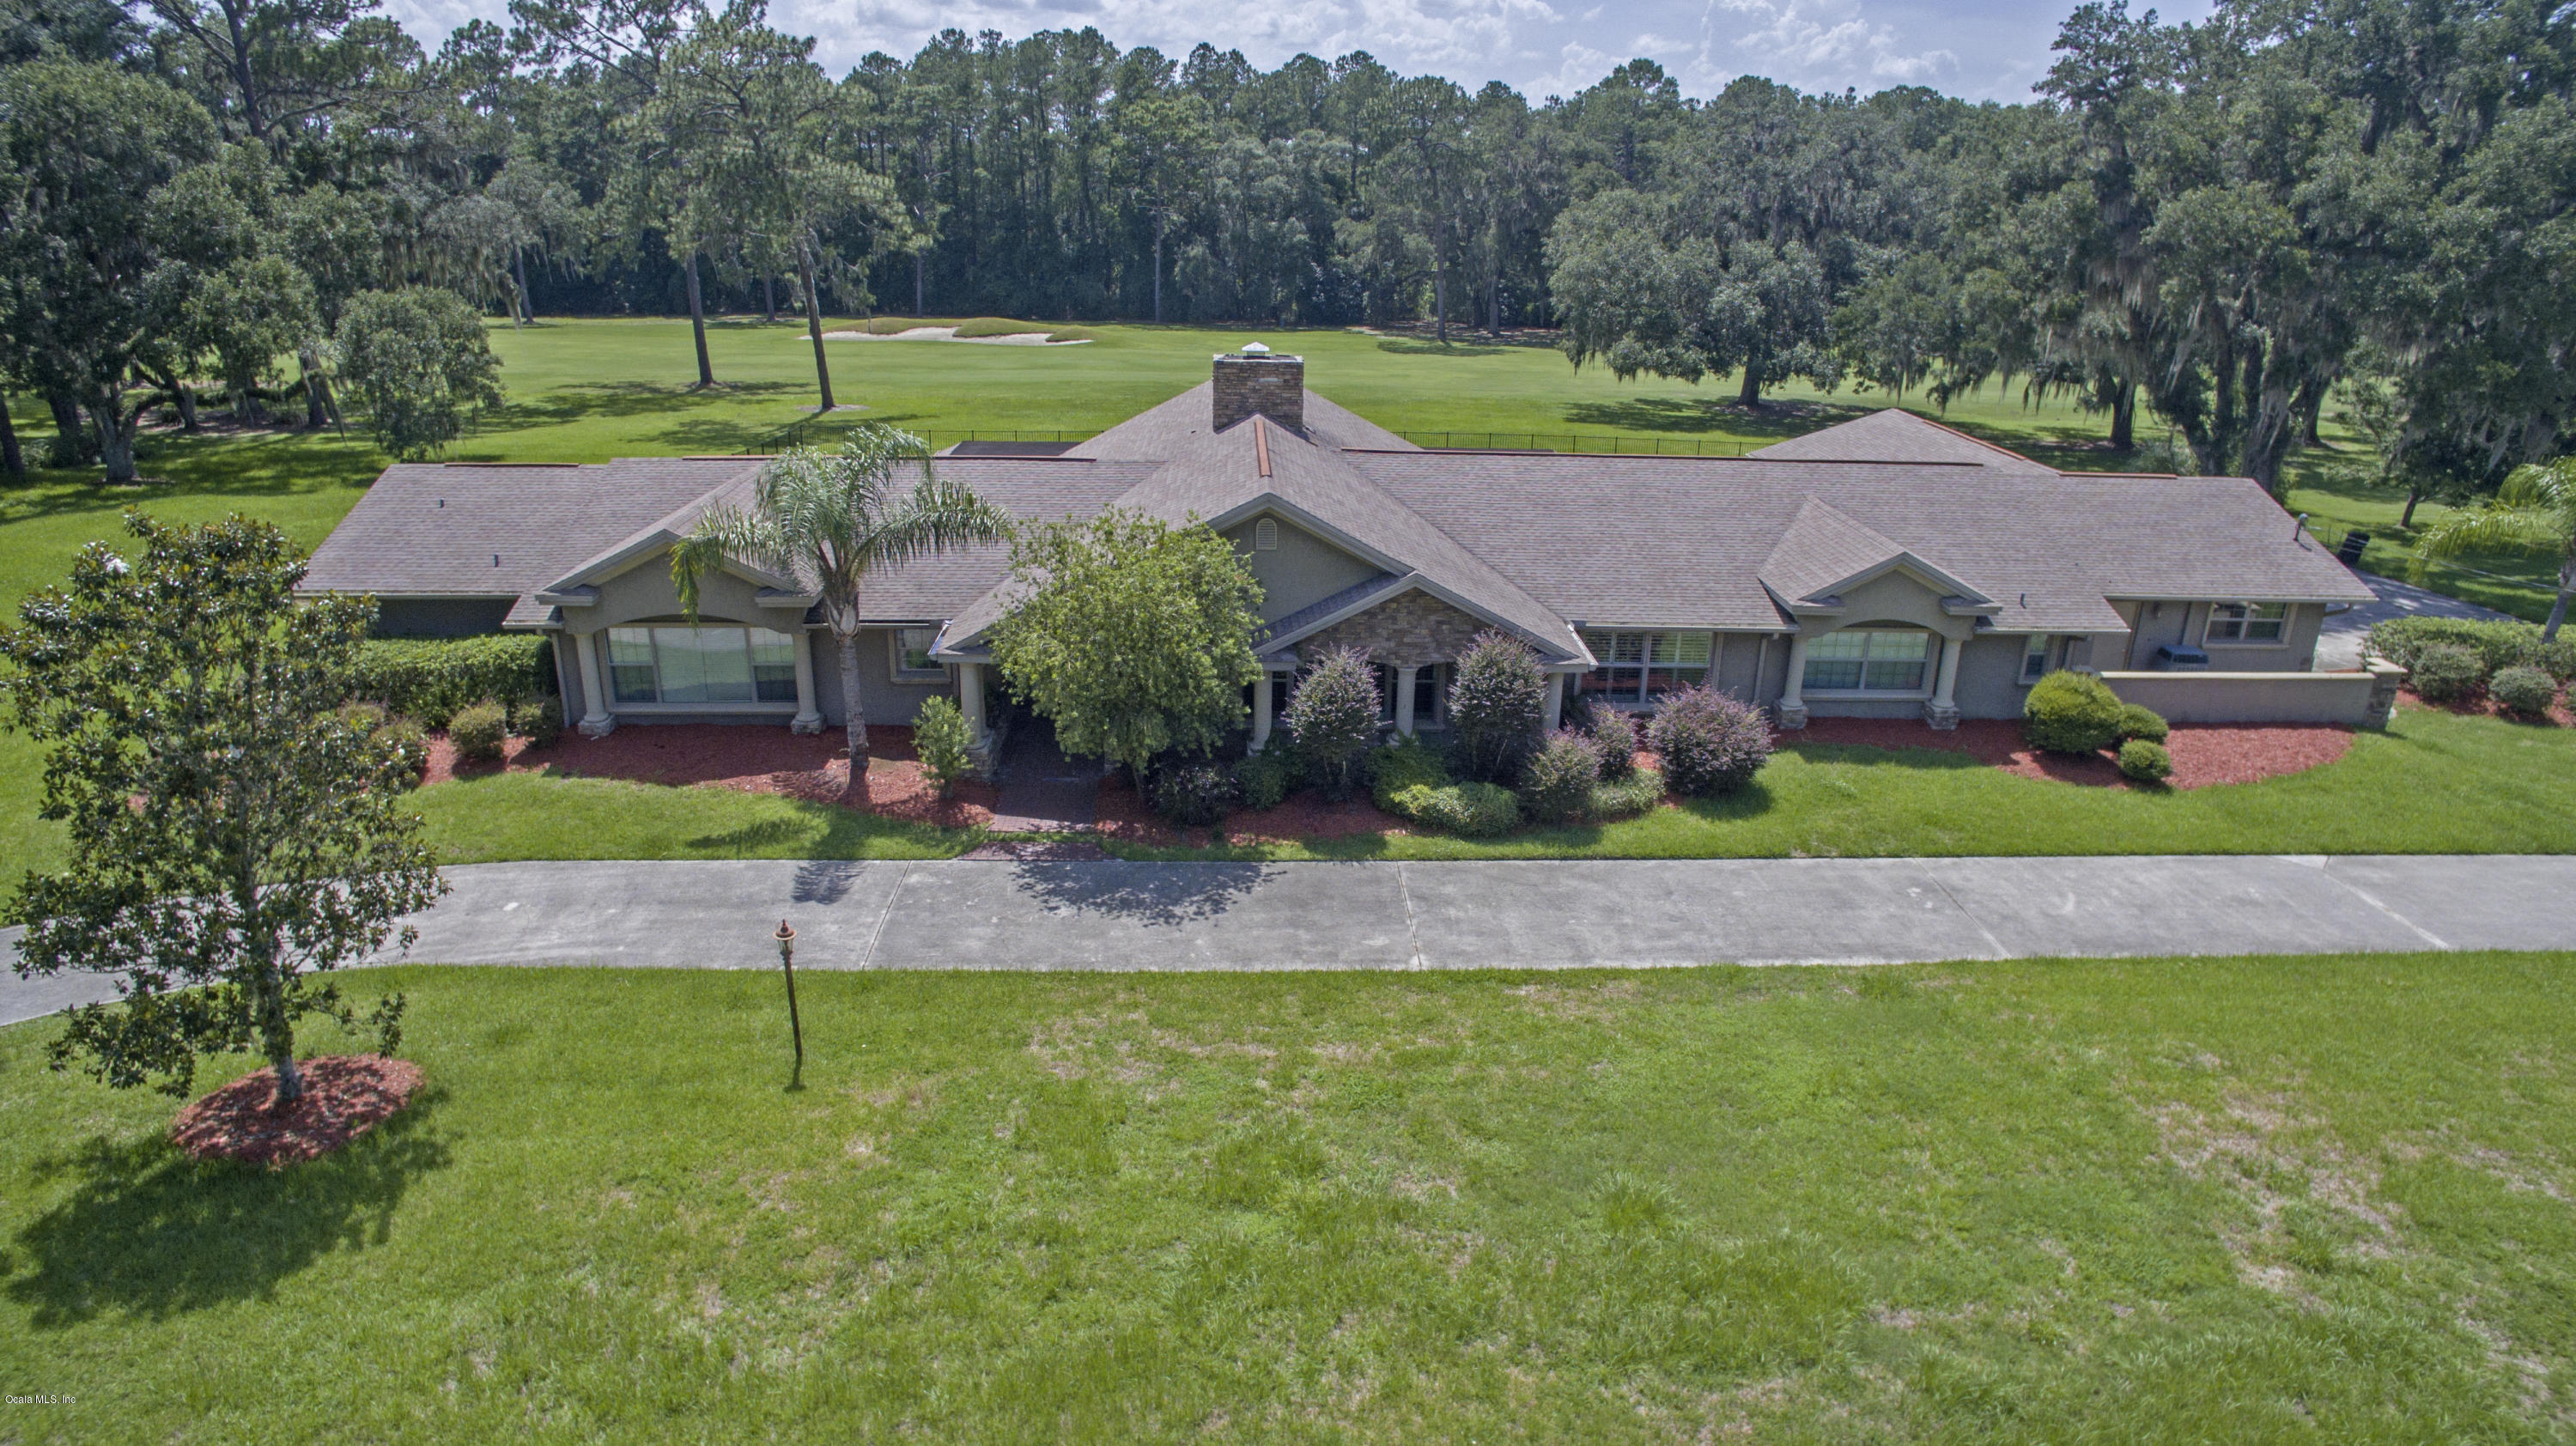 5484 NW 80TH AVE ROAD, OCALA, FL 34482